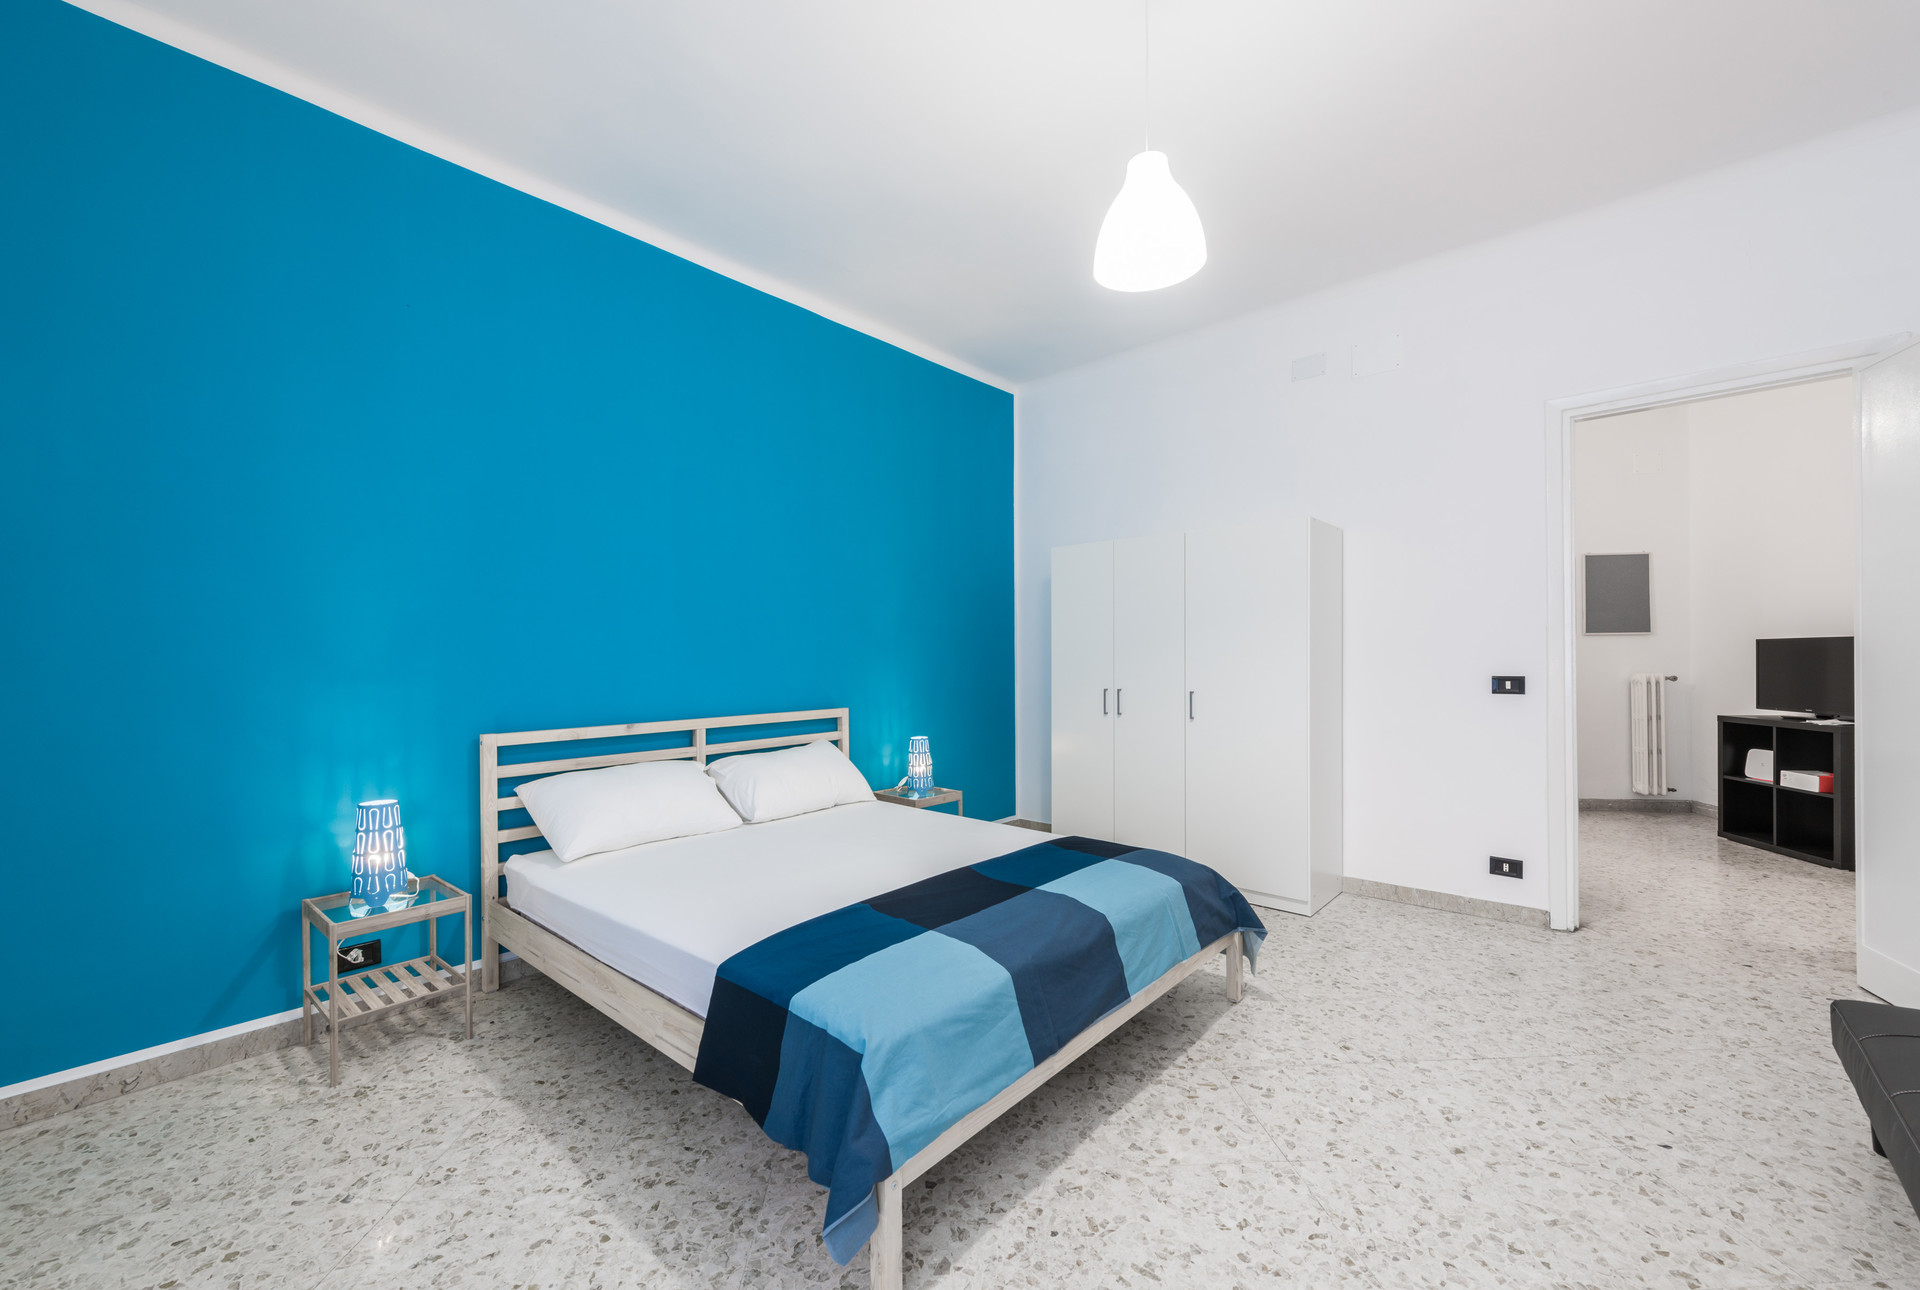 ... Spacious and confortable bedroom in really nice and luminous sha ...